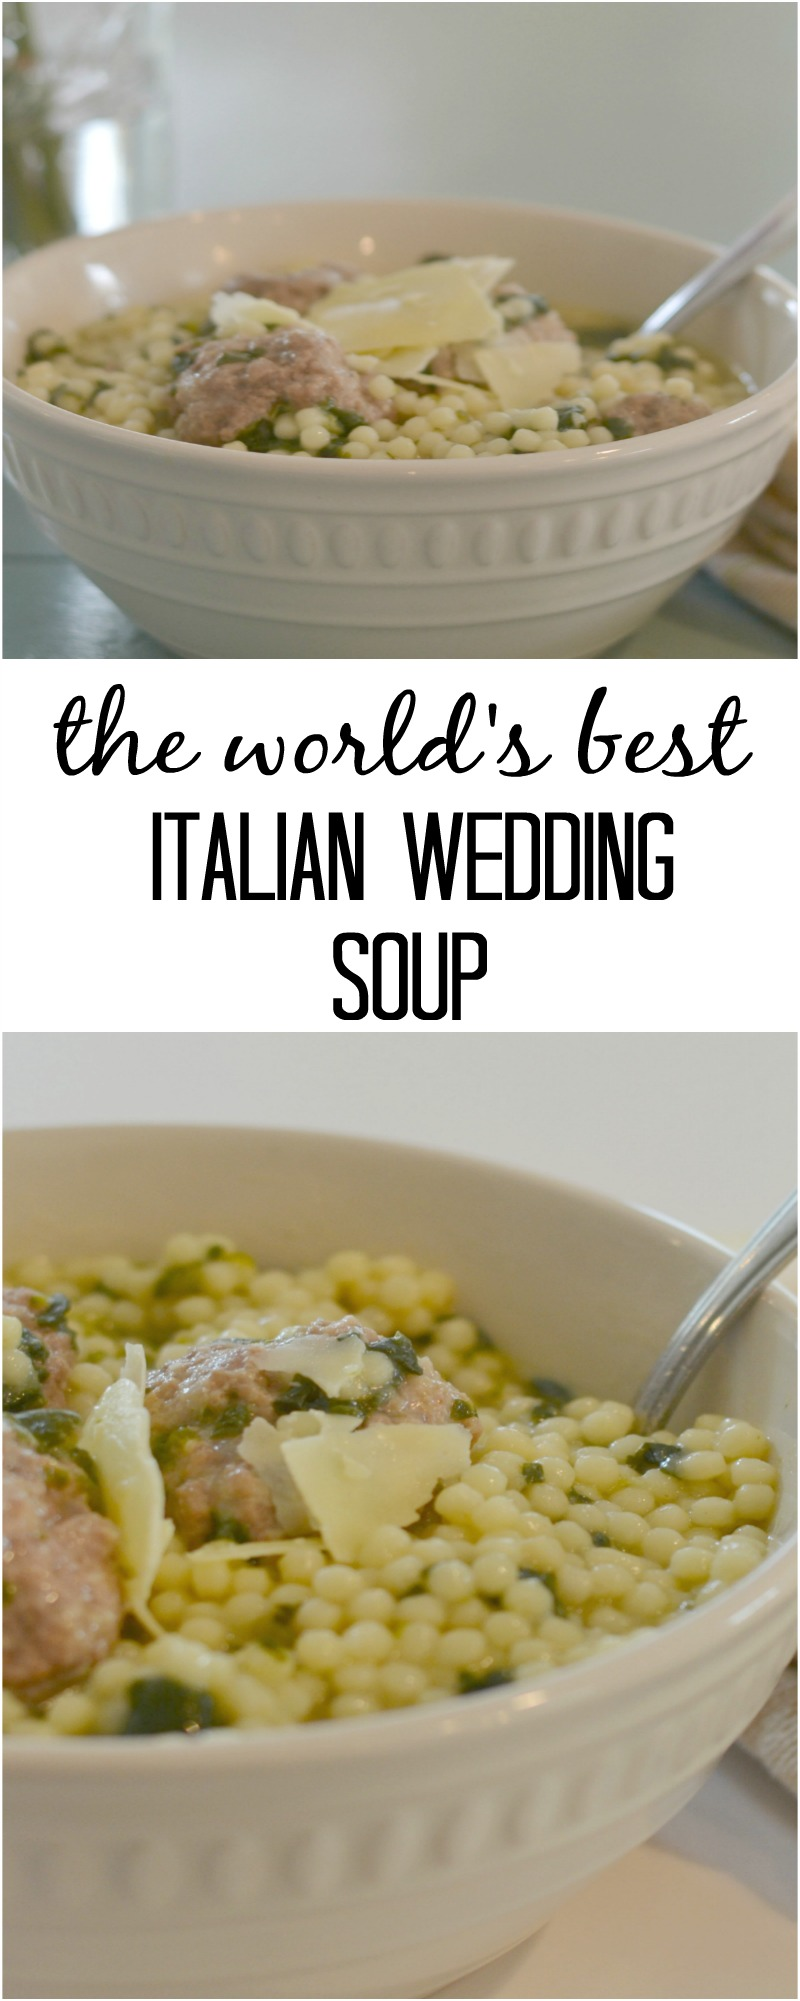 The World's Best Italian Wedding Soup